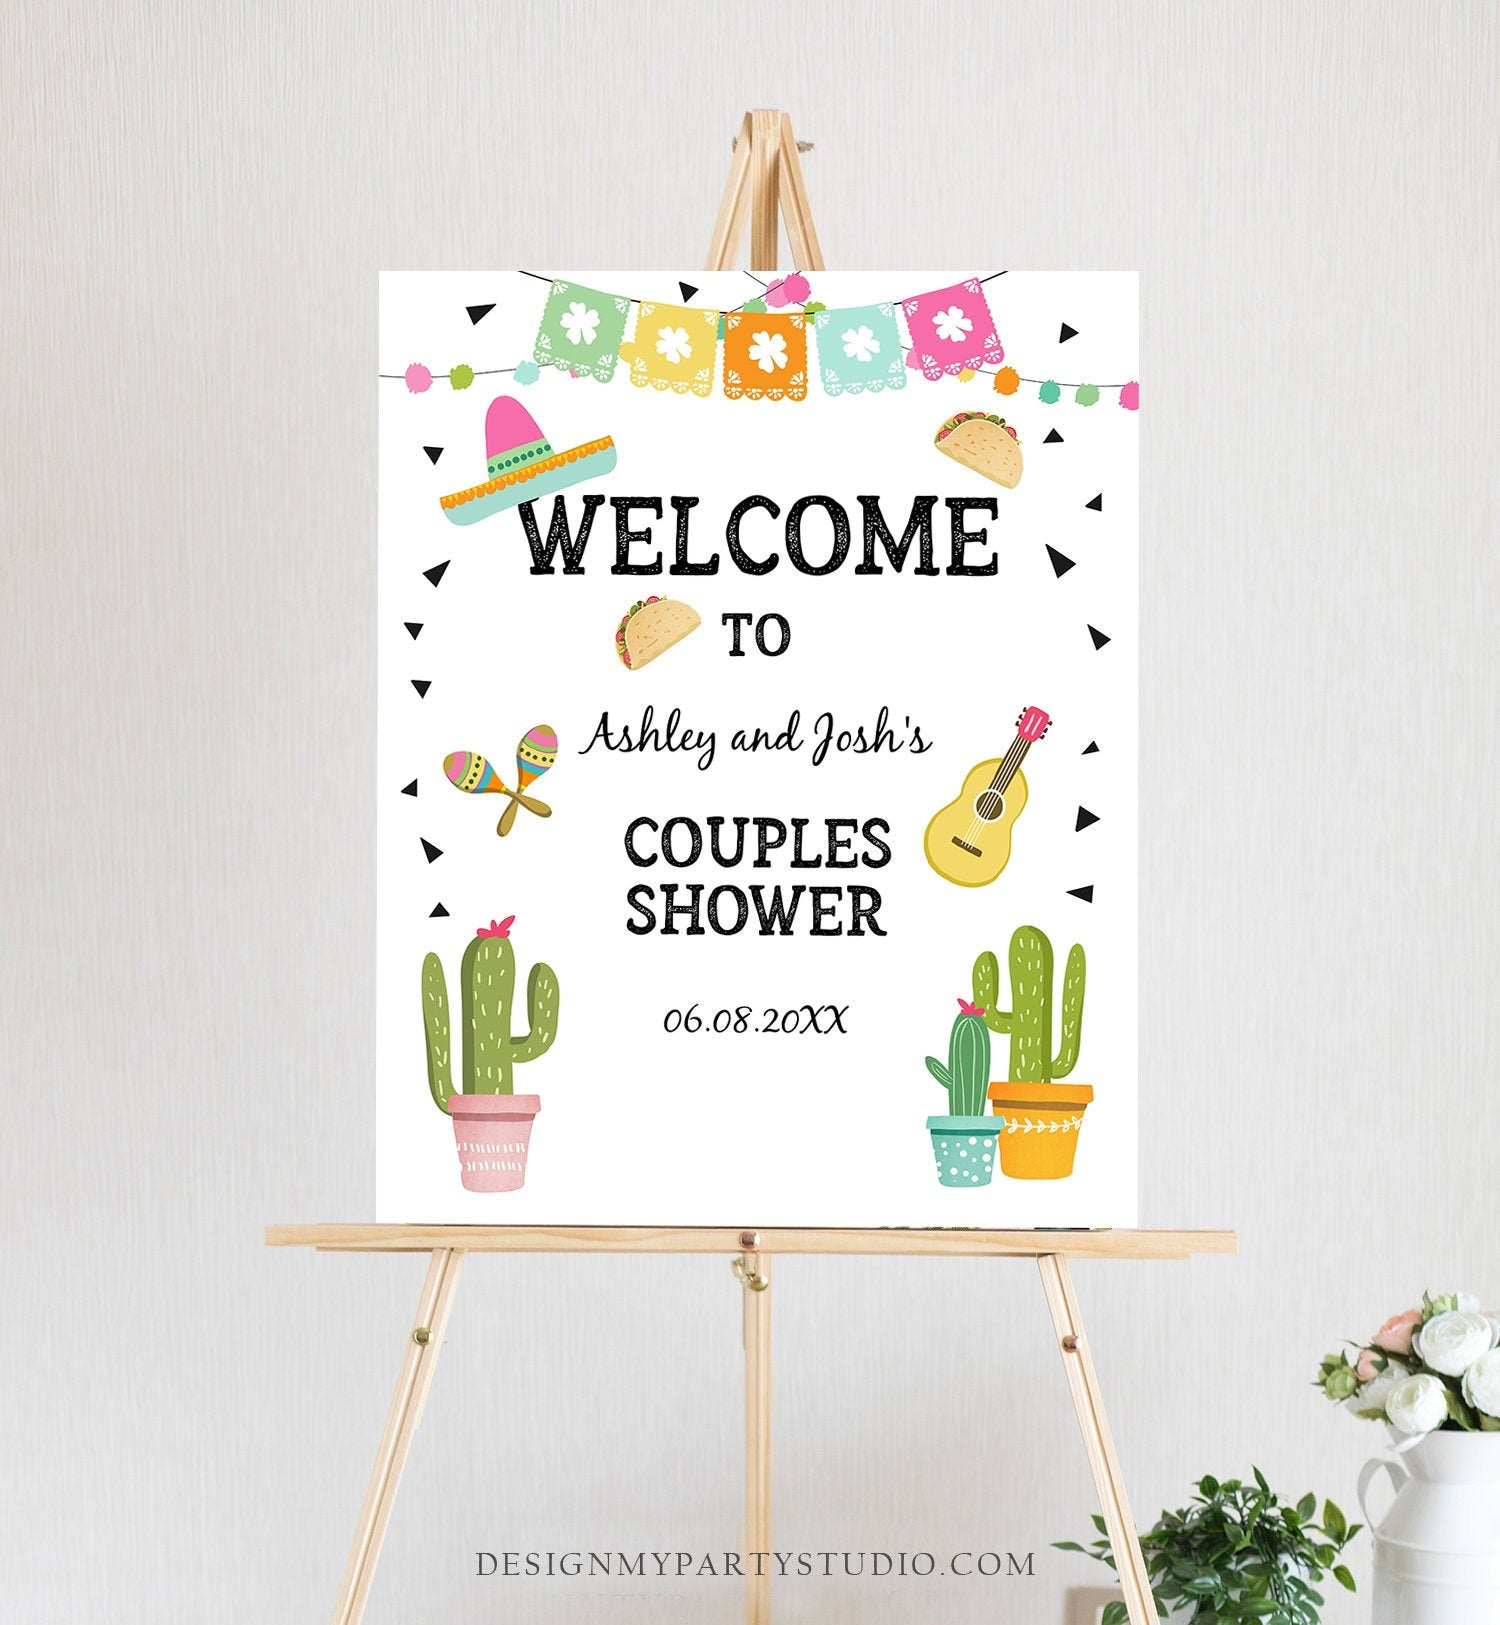 Editable Fiesta Cactus Welcome Sign Couples Shower Welcome Cactus Mexican Succulent Taco Bout Love Succulent Corjl Template Printable 0161